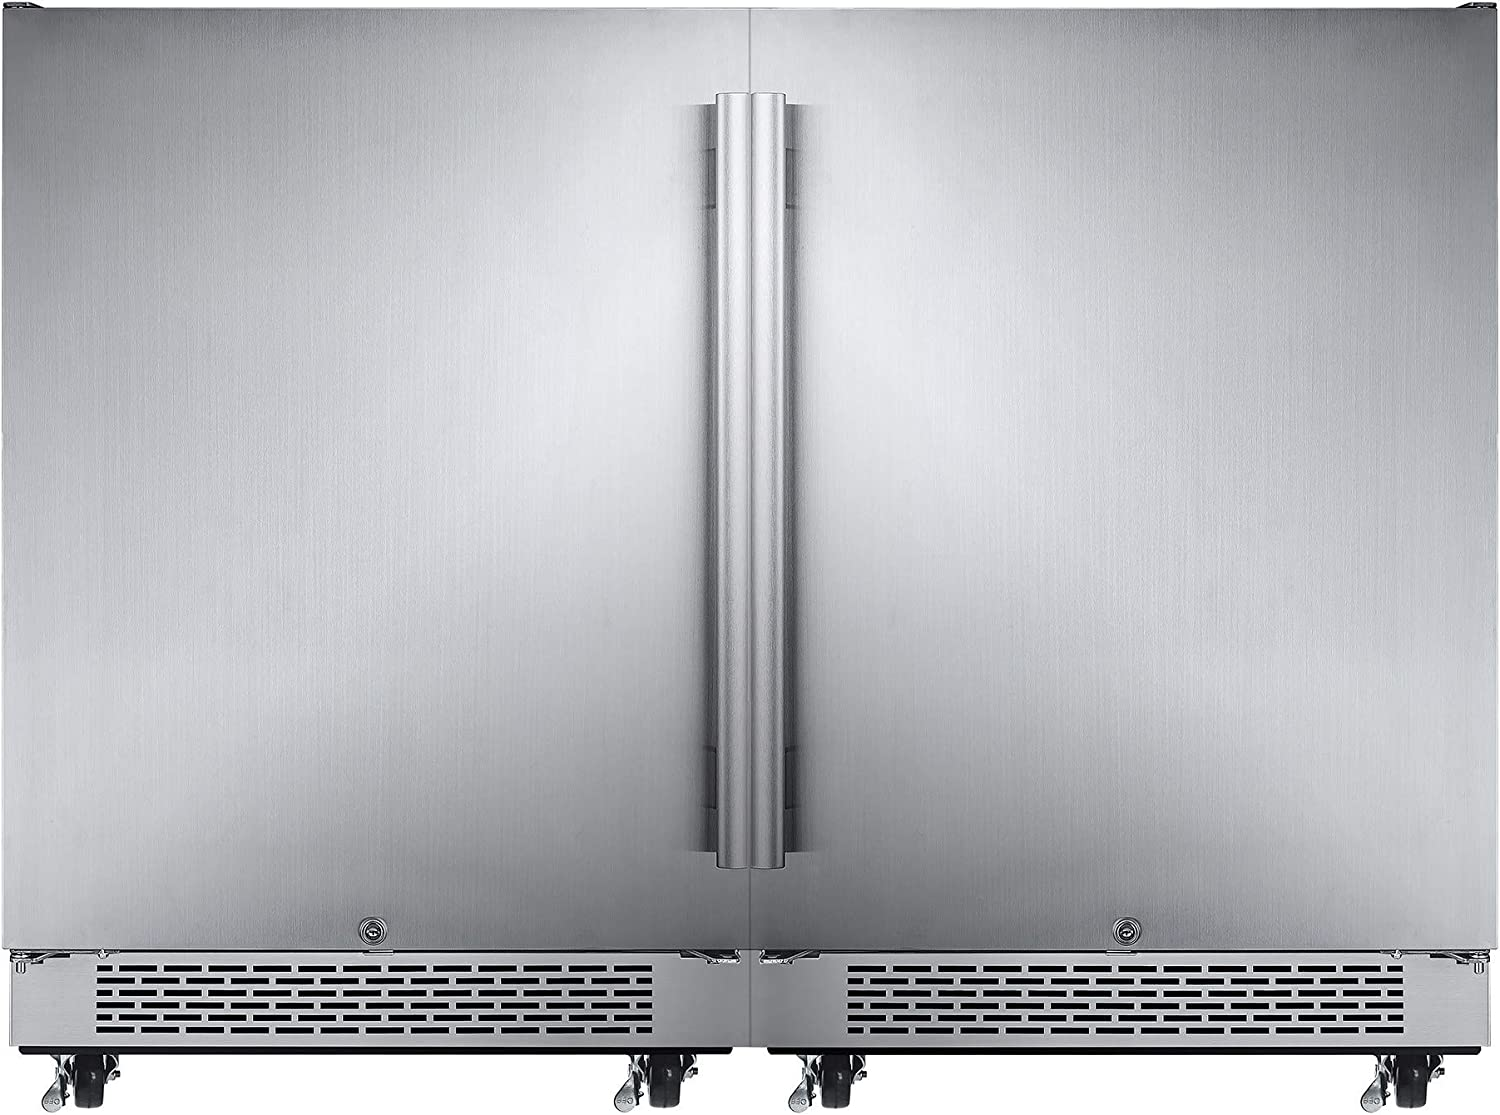 Avallon AFR241SSODDUAL Stainless Steel Built-In 48 Inch Wide 11 Cu. Ft. Total Capacity Side by Side Dual Refrigerators with Touch Controls and Door Locks